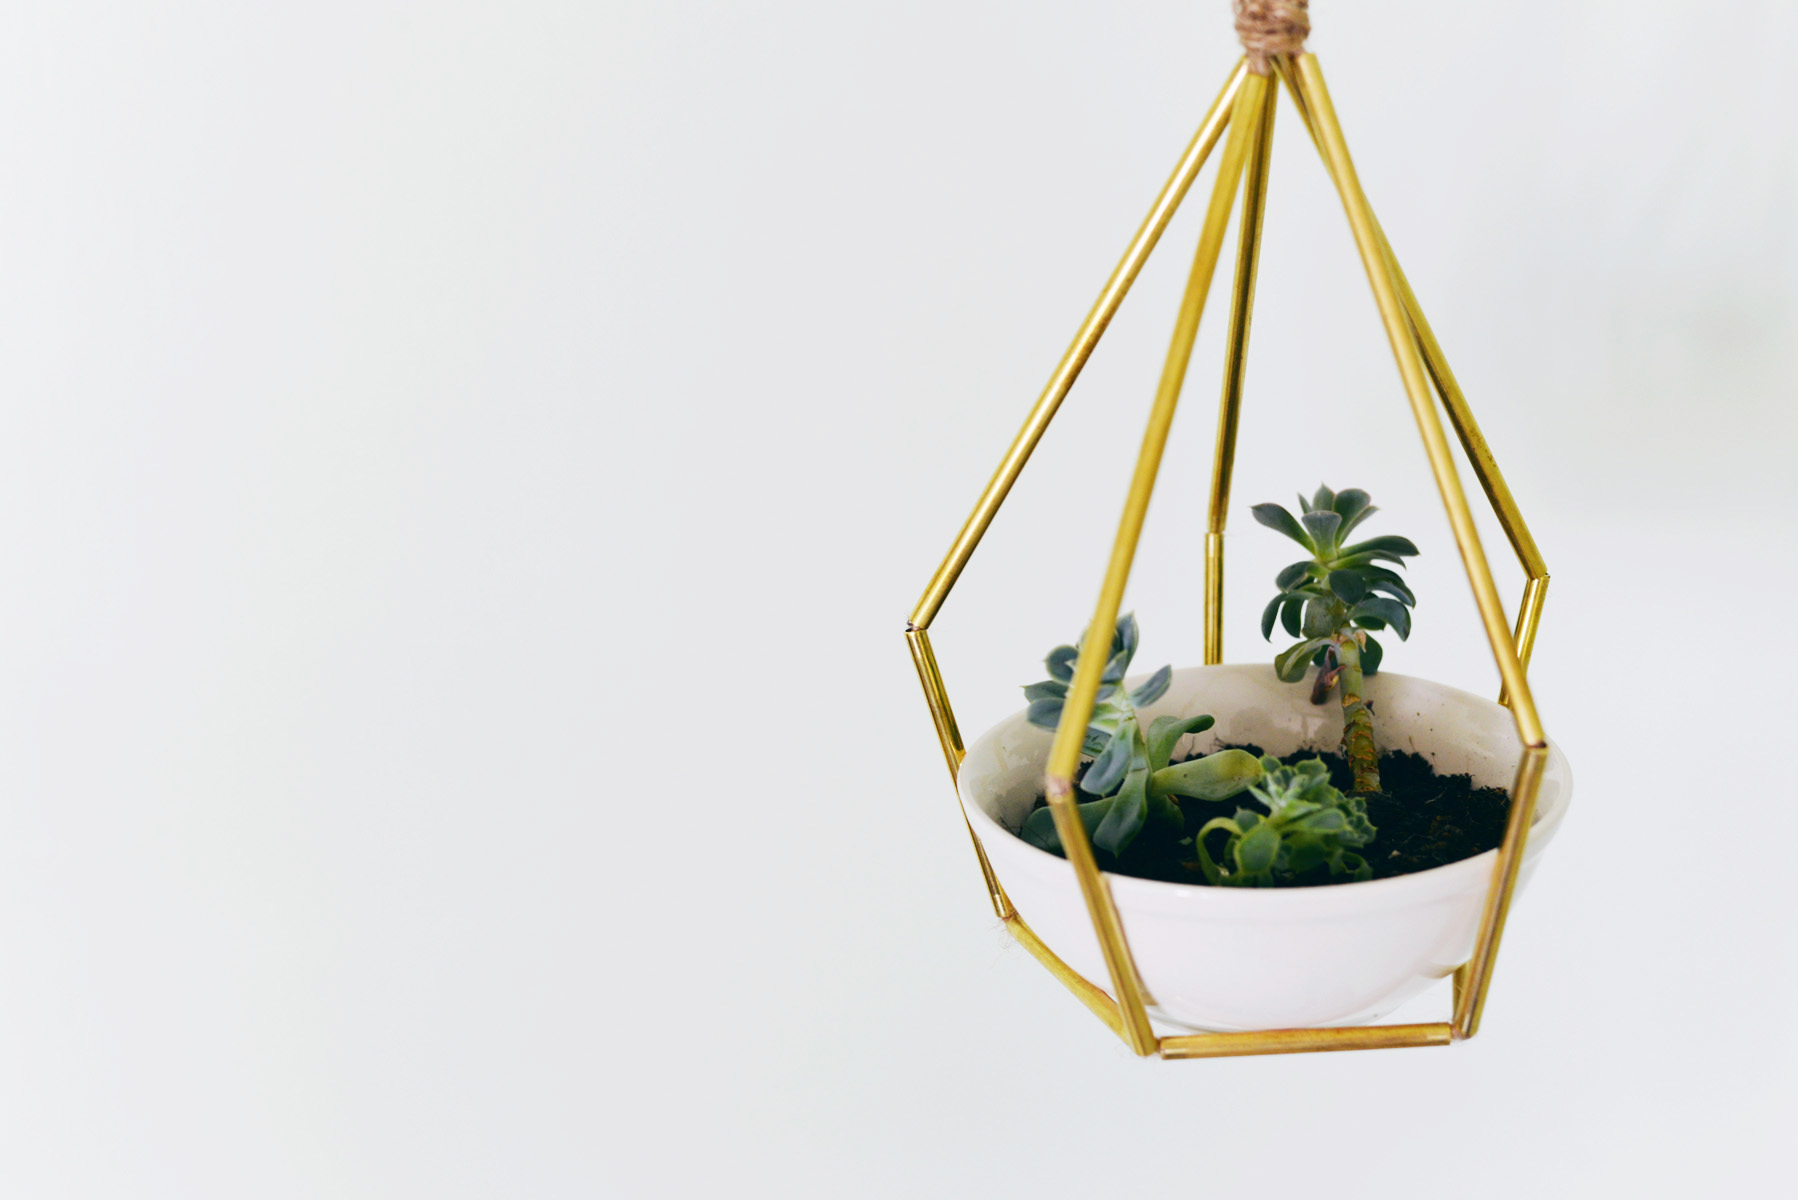 DIY Geometric Metal Tubing Hanging Planter